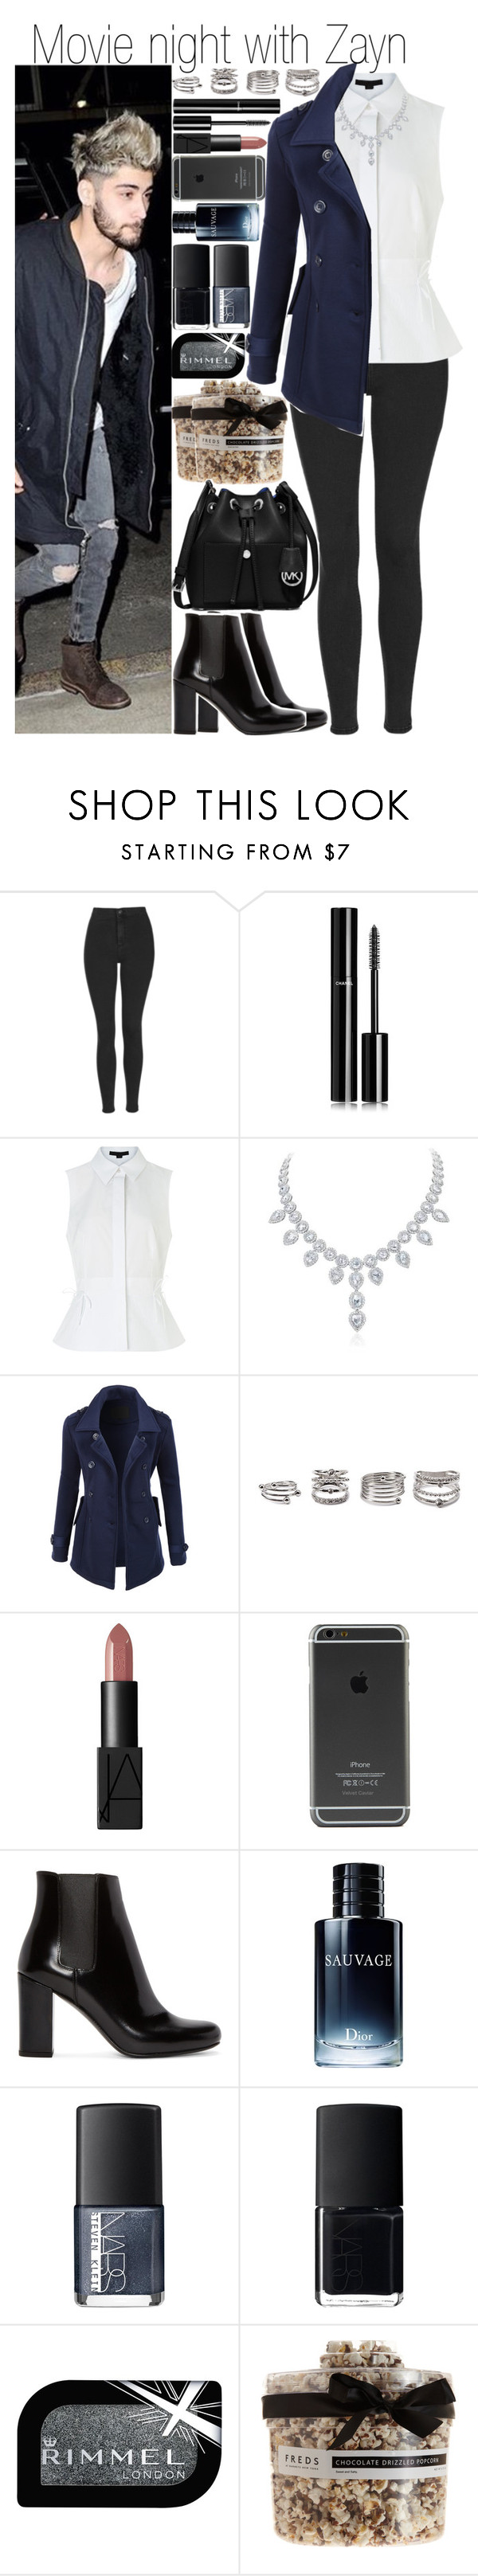 """Movie night with Zayn"" by fashion-onedirection ❤ liked on Polyvore featuring Topshop, Chanel, Alexander Wang, LE3NO, Forever 21, NARS Cosmetics, Yves Saint Laurent, Christian Dior, Rimmel and FREDS at Barneys New York"